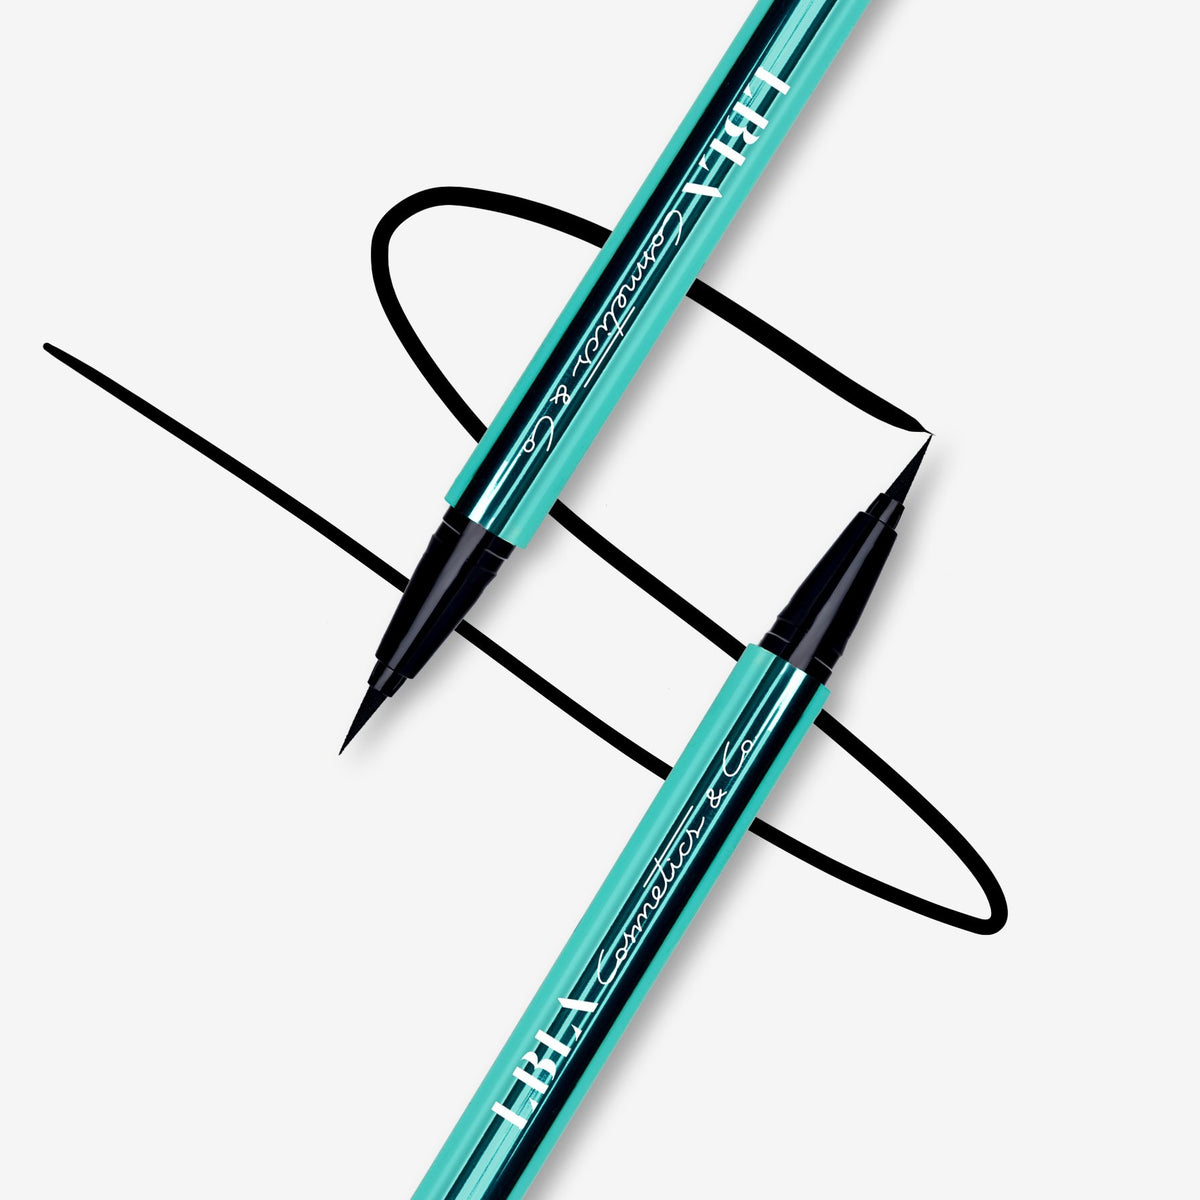 LBLA COSMETICS & CO. EVERLASTING EYELINER lash safe liquid eyeliner